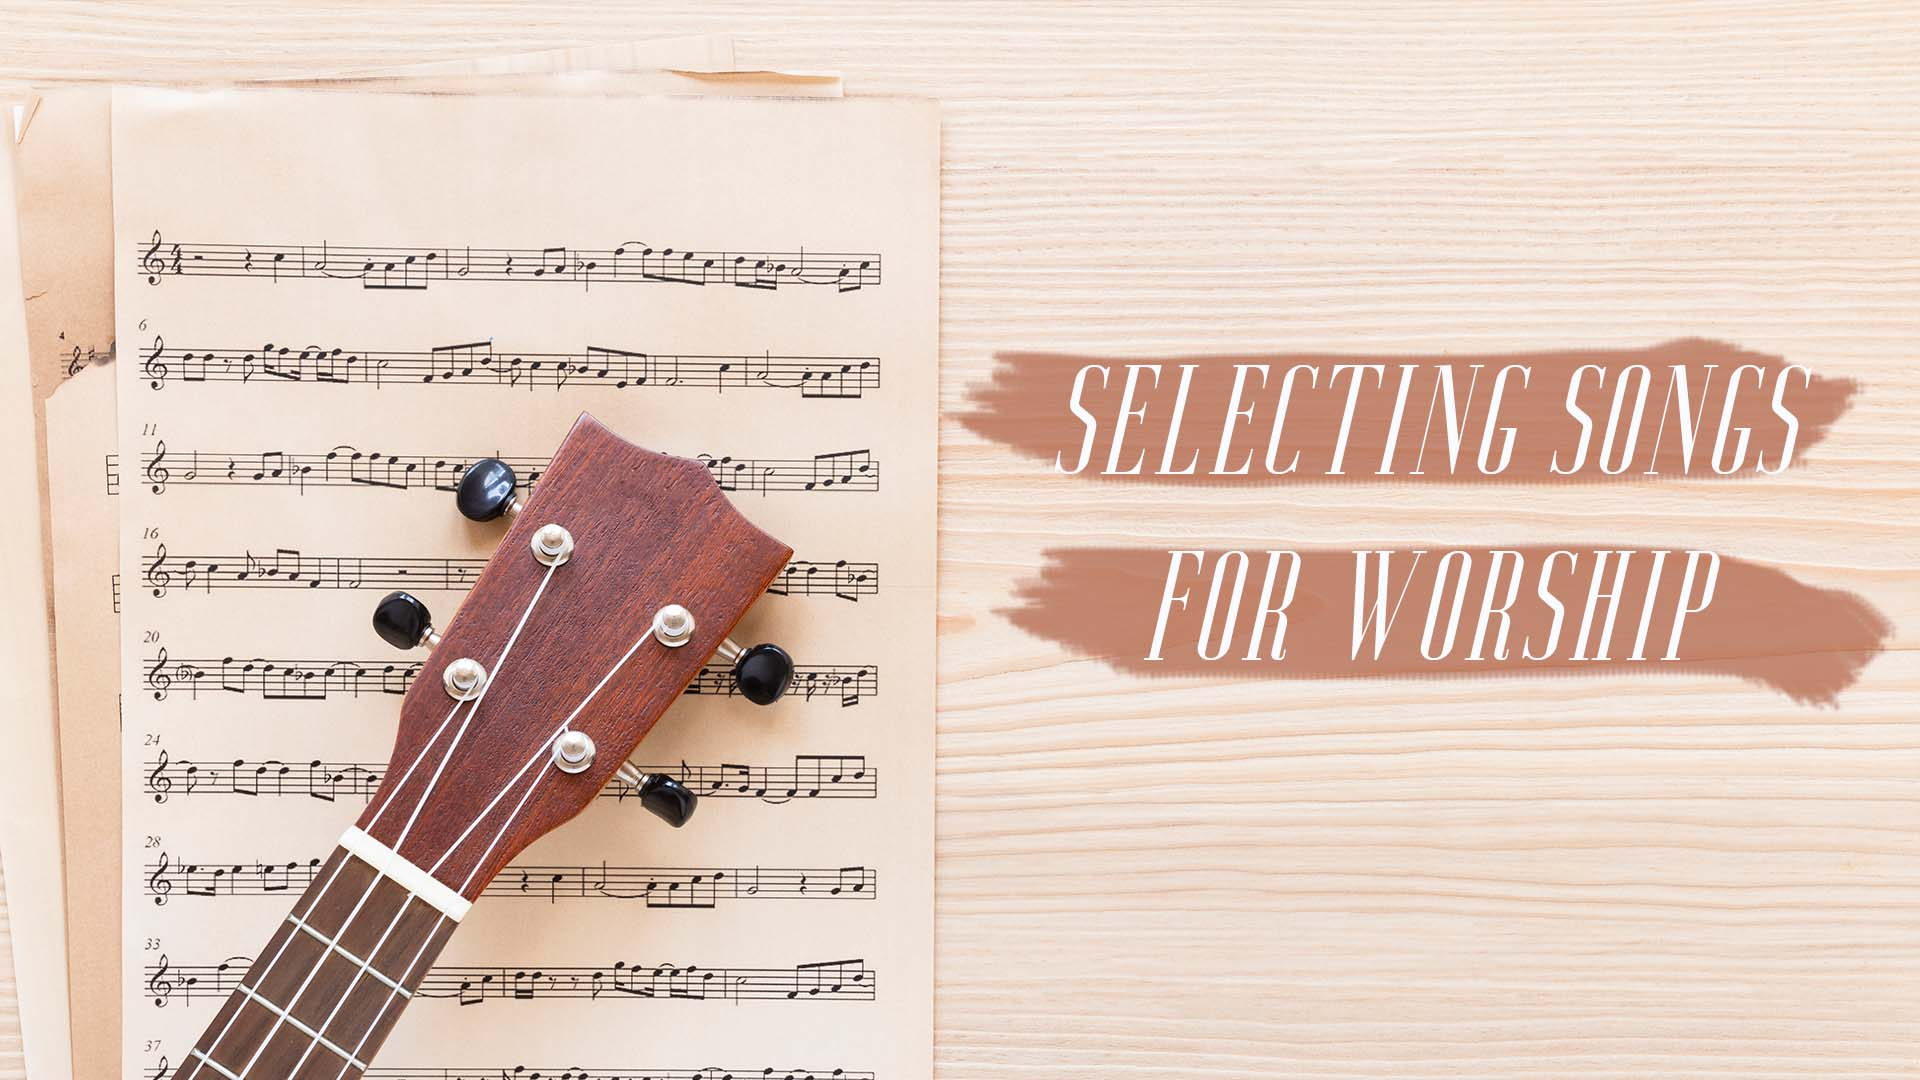 Selecting Songs for Worship